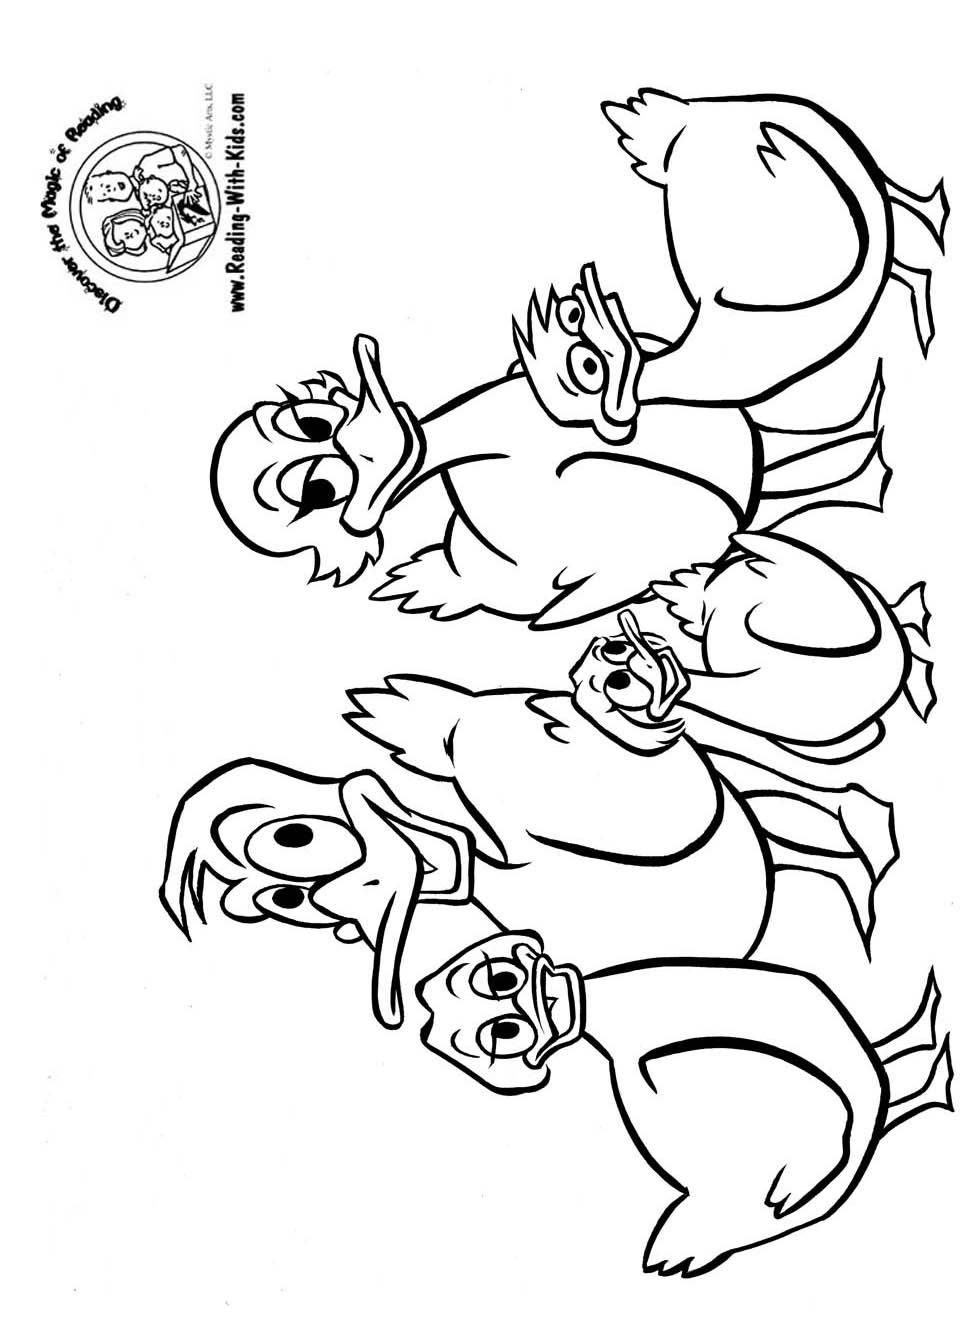 Free coloring pages ducks - Five Little Ducks Coloring Pages